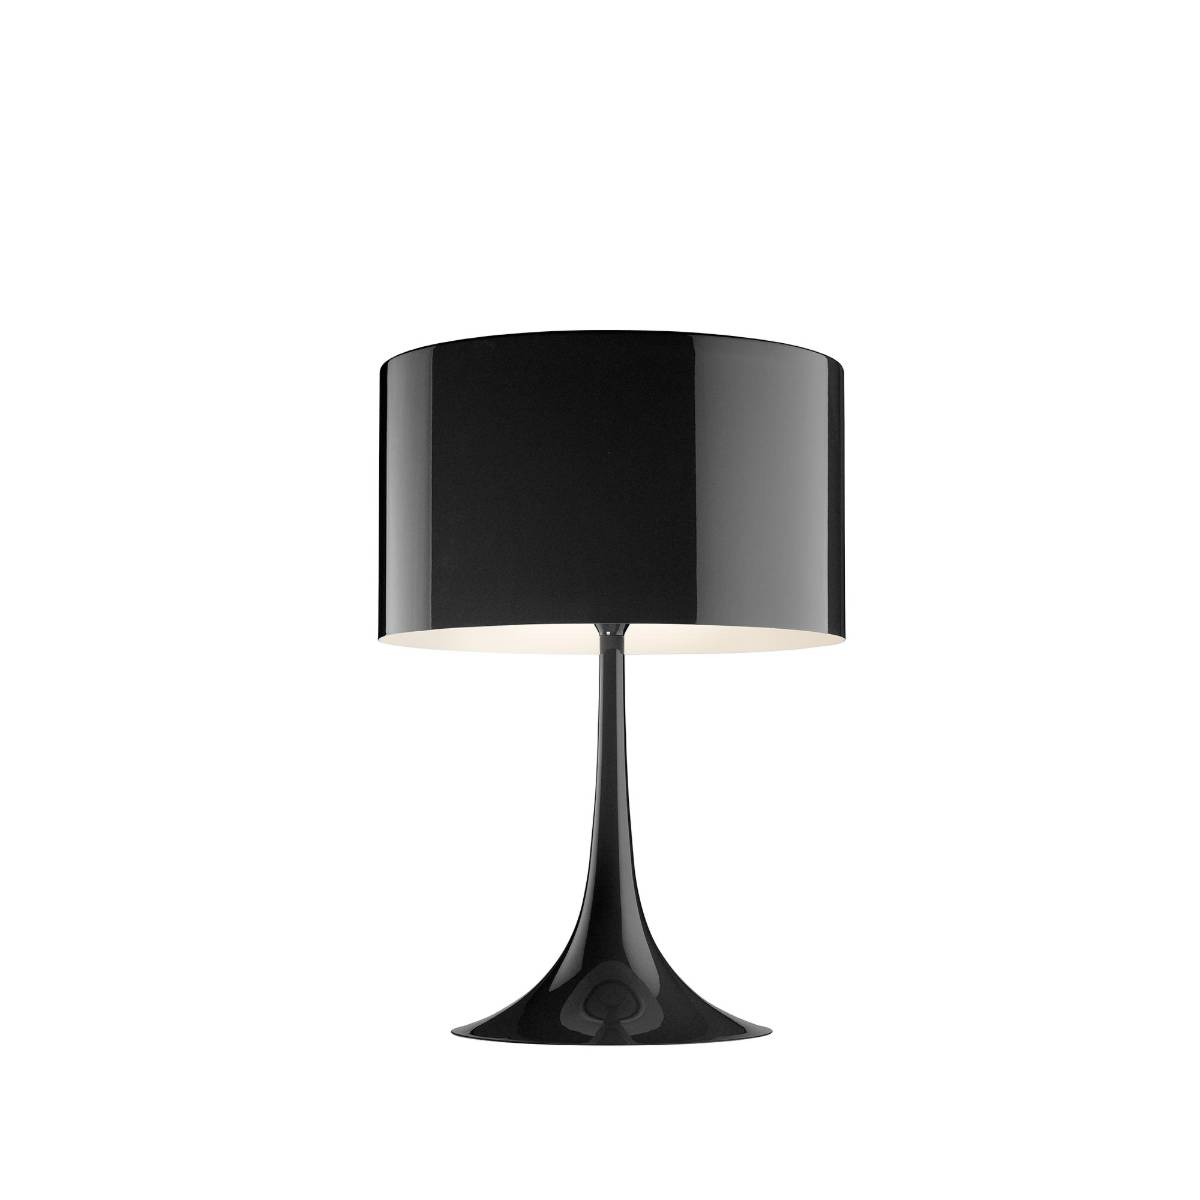 Flos Spun Light T2 Tafellamp